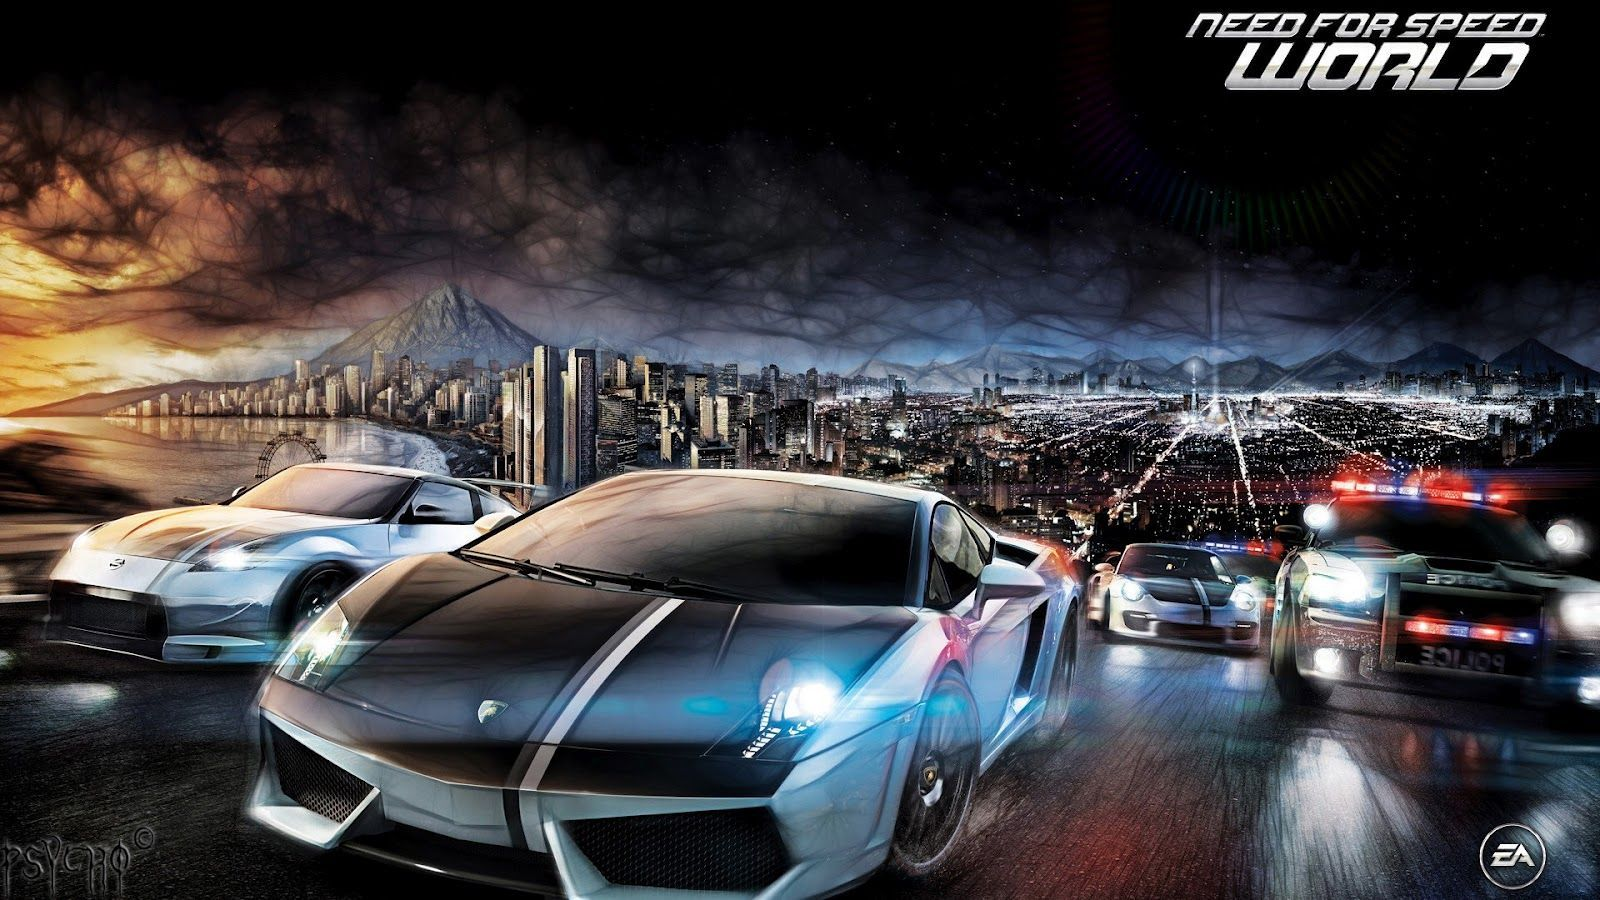 Speedy Car Wallpapers For Free Desktop Download All - Cool cars photos download